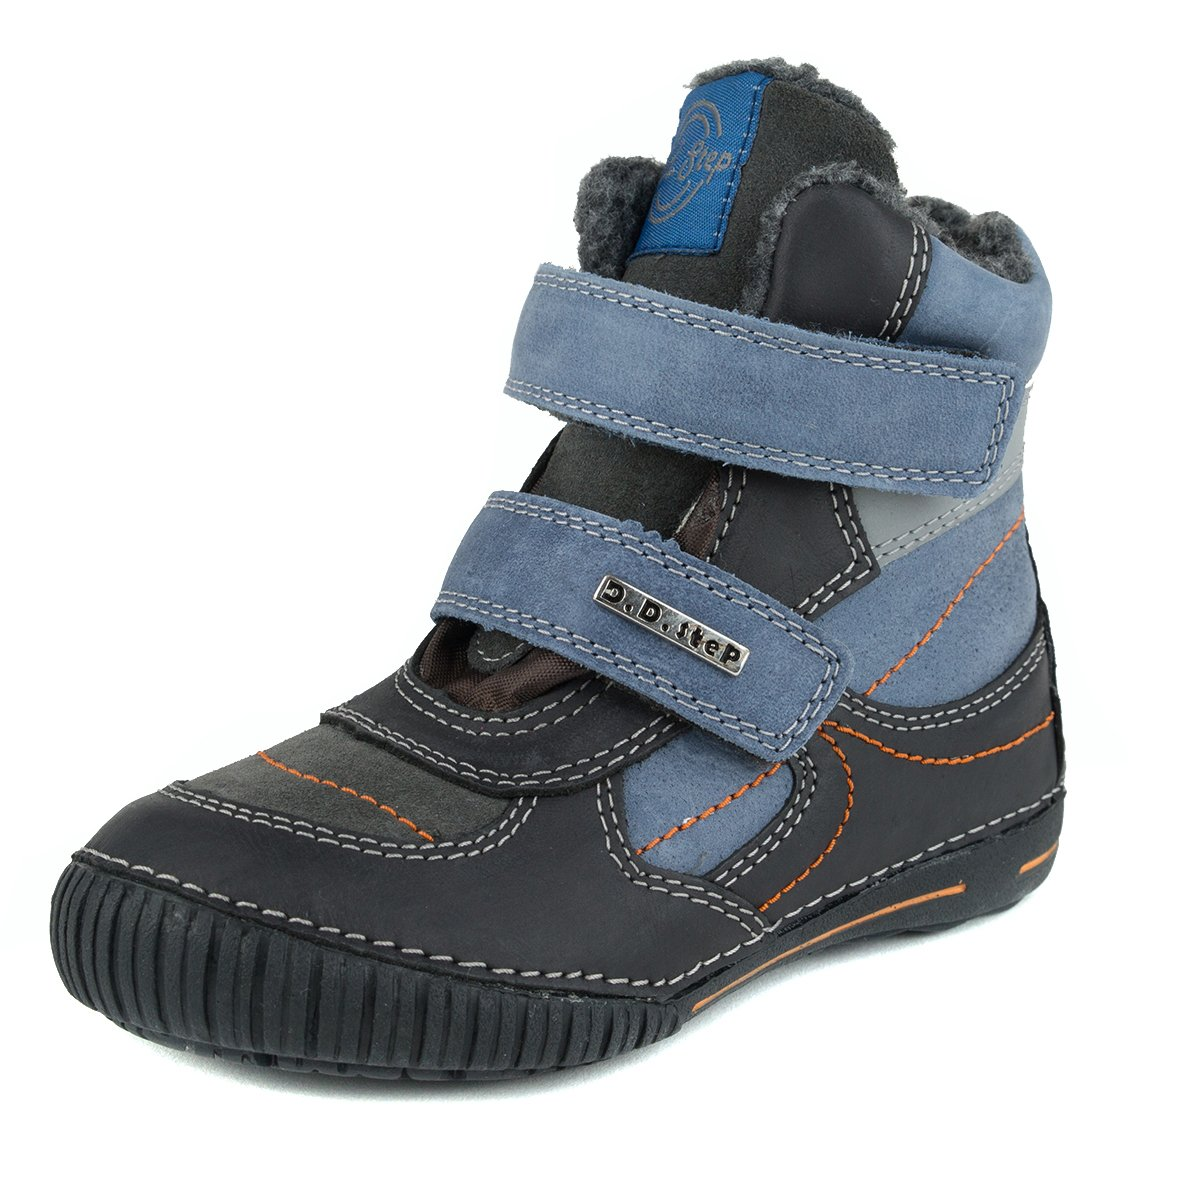 D.D. Step Boys' insulated boots, black and blue, genuine leather (036-30)